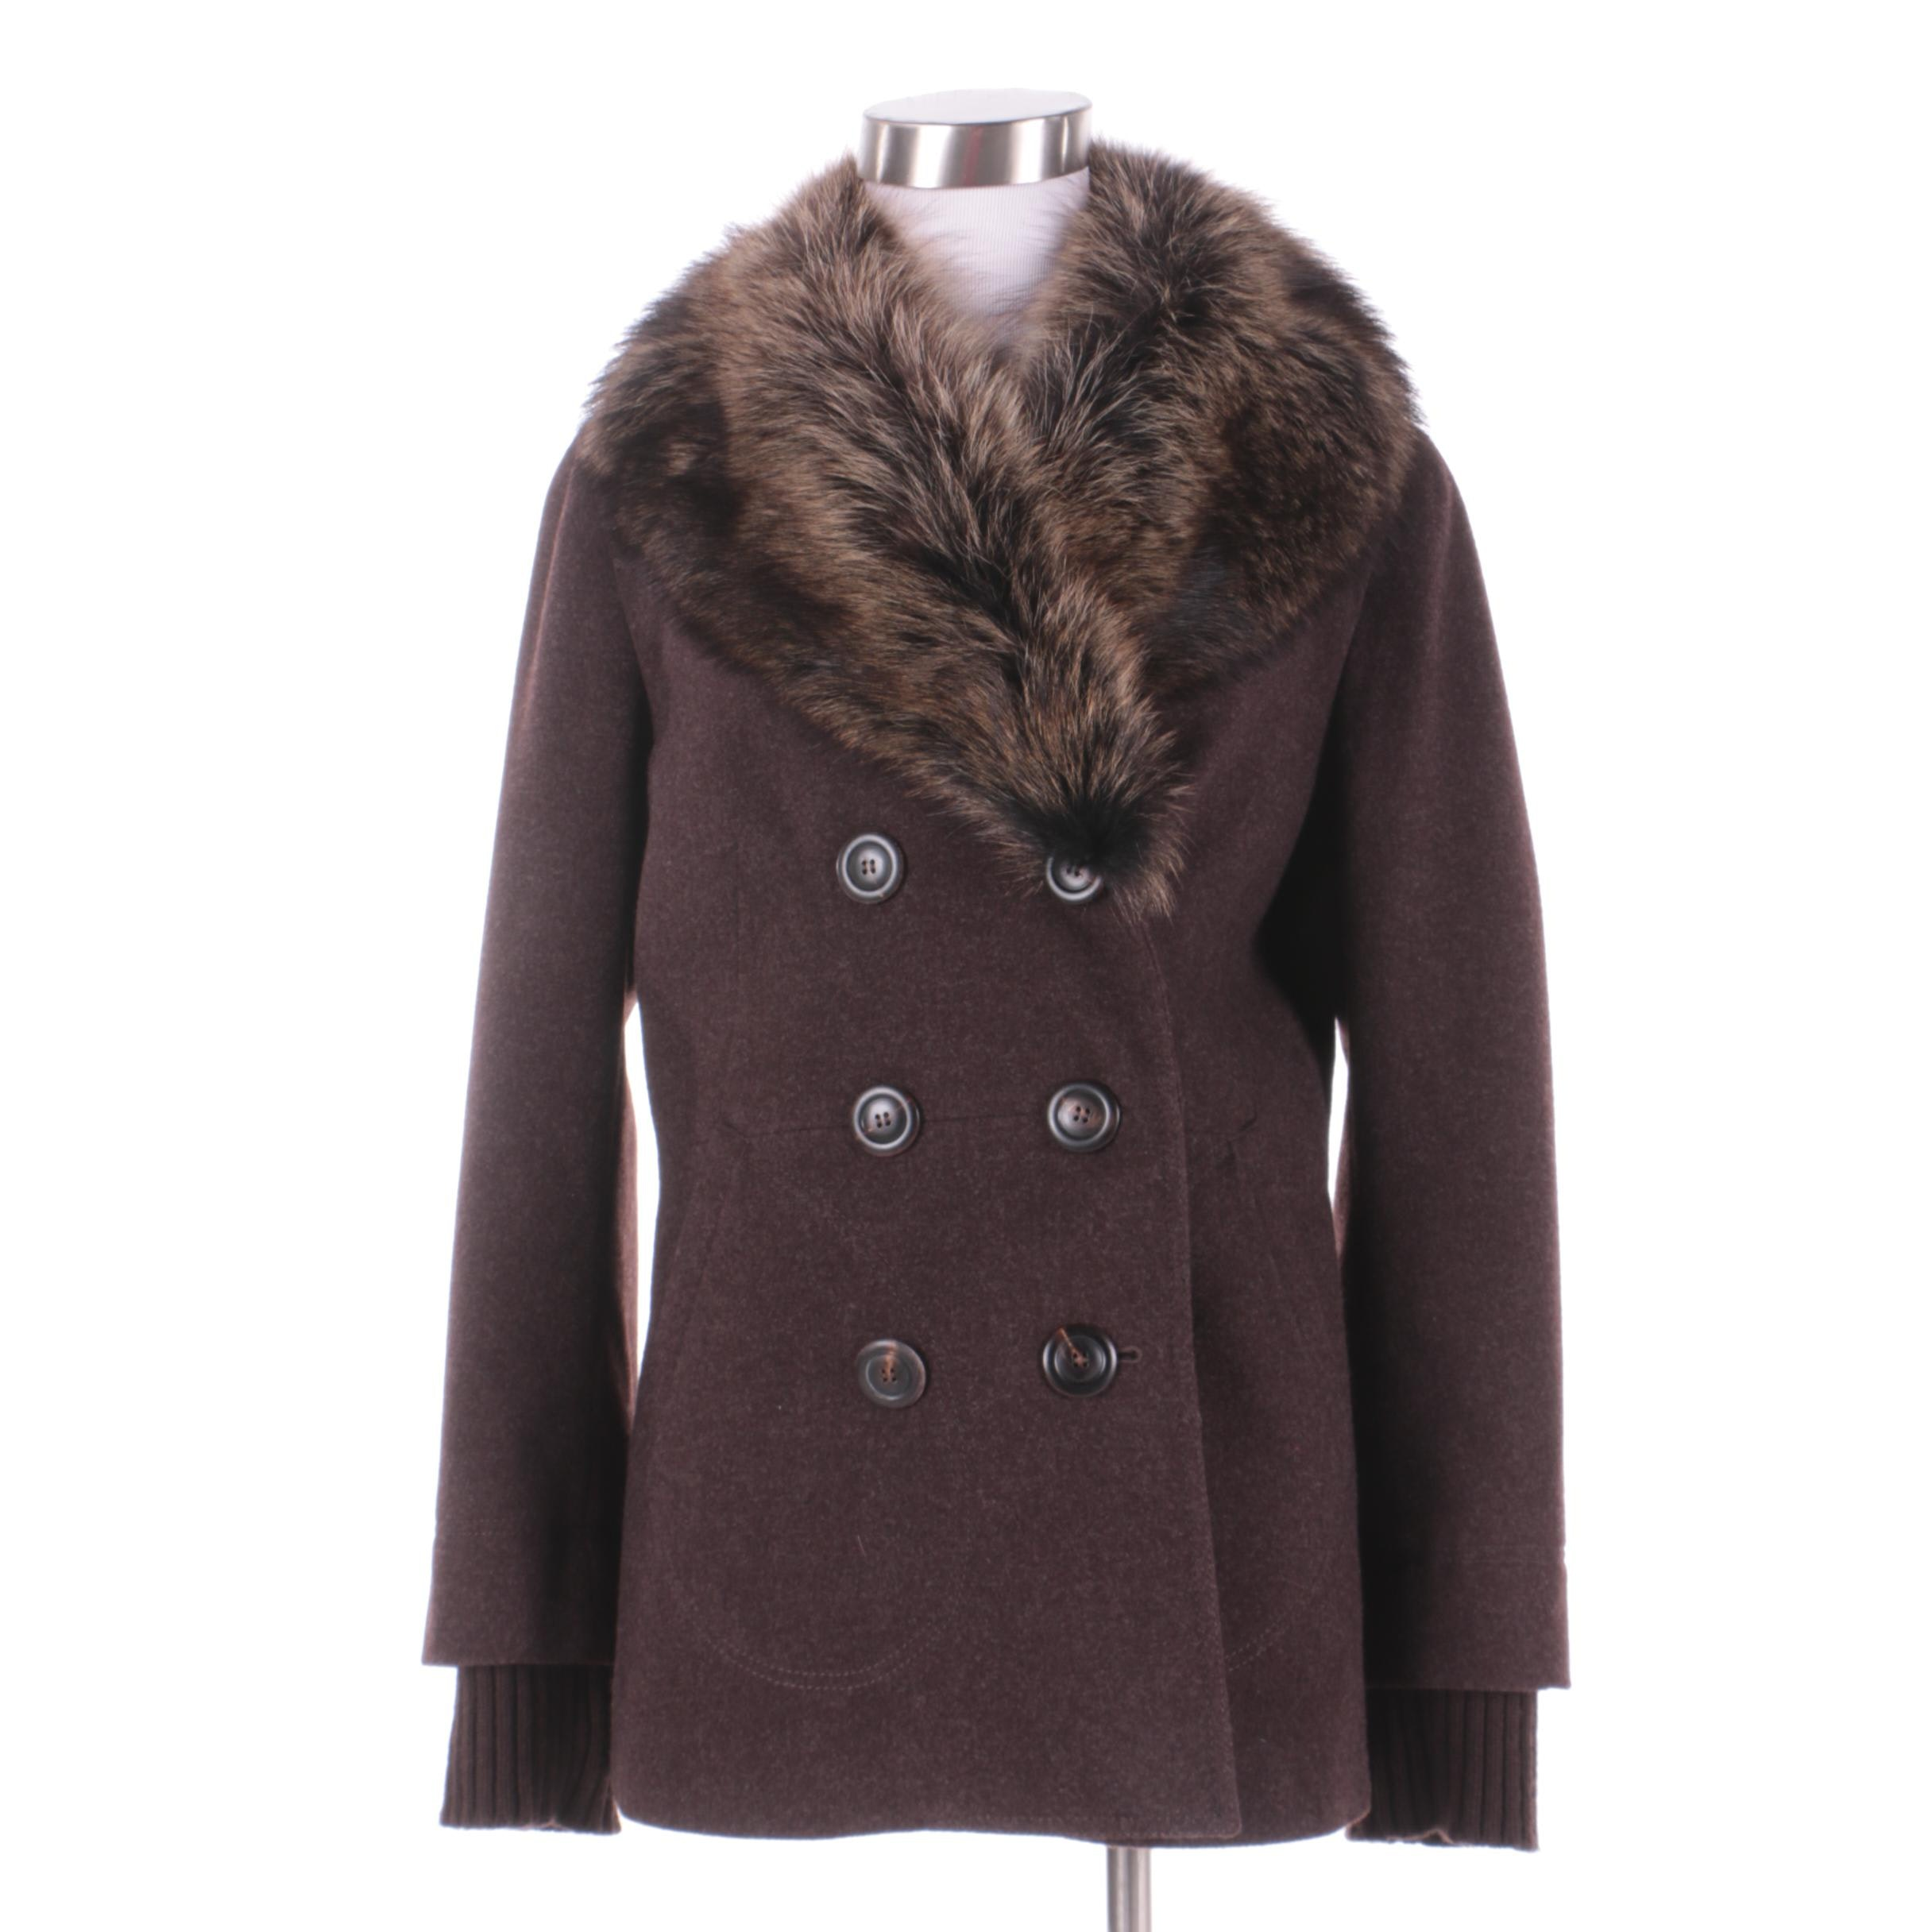 Women's Luciano Barbera Brown Wool Double-Breasted Coat with Raccoon Fur Collar